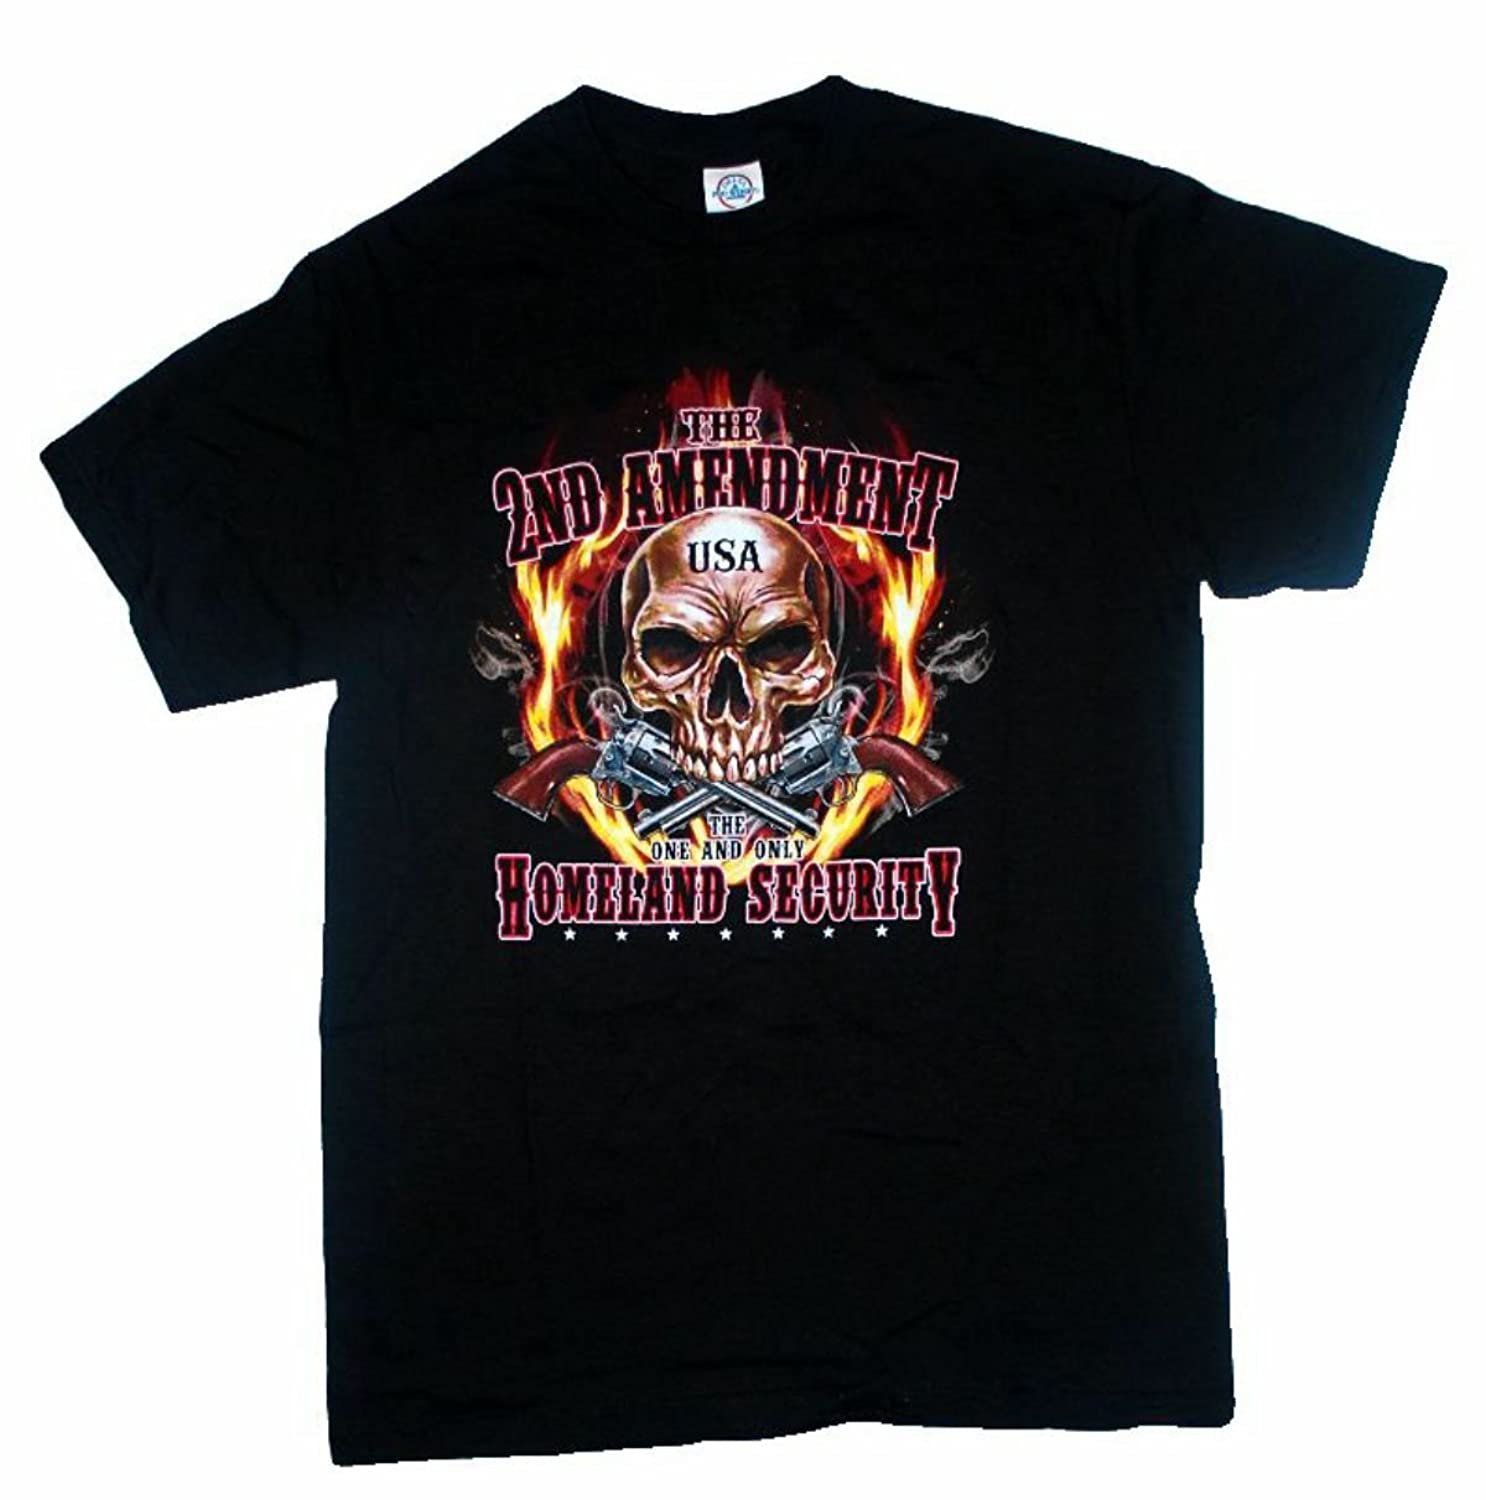 2nd Amendment Homeland Security Skull and Flames T Shirt